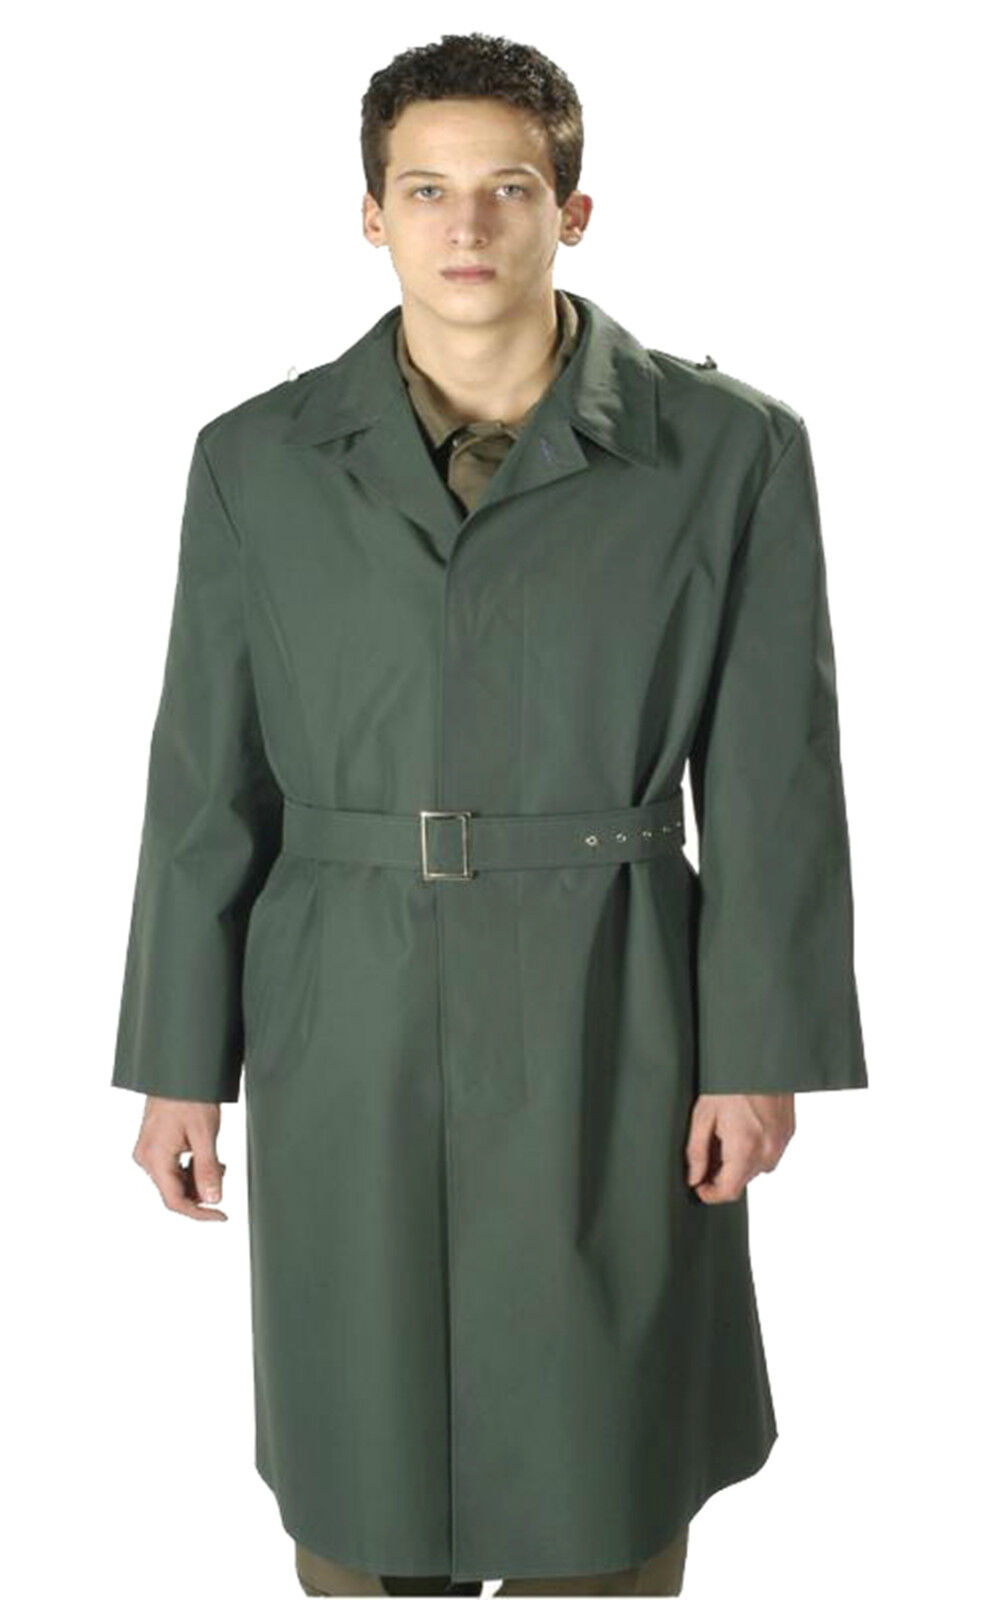 affordable price the best attitude 100% satisfaction guarantee Details about Genuine German Army Mens NVA Green Officers Trench Coat  Waterproof Raincoat